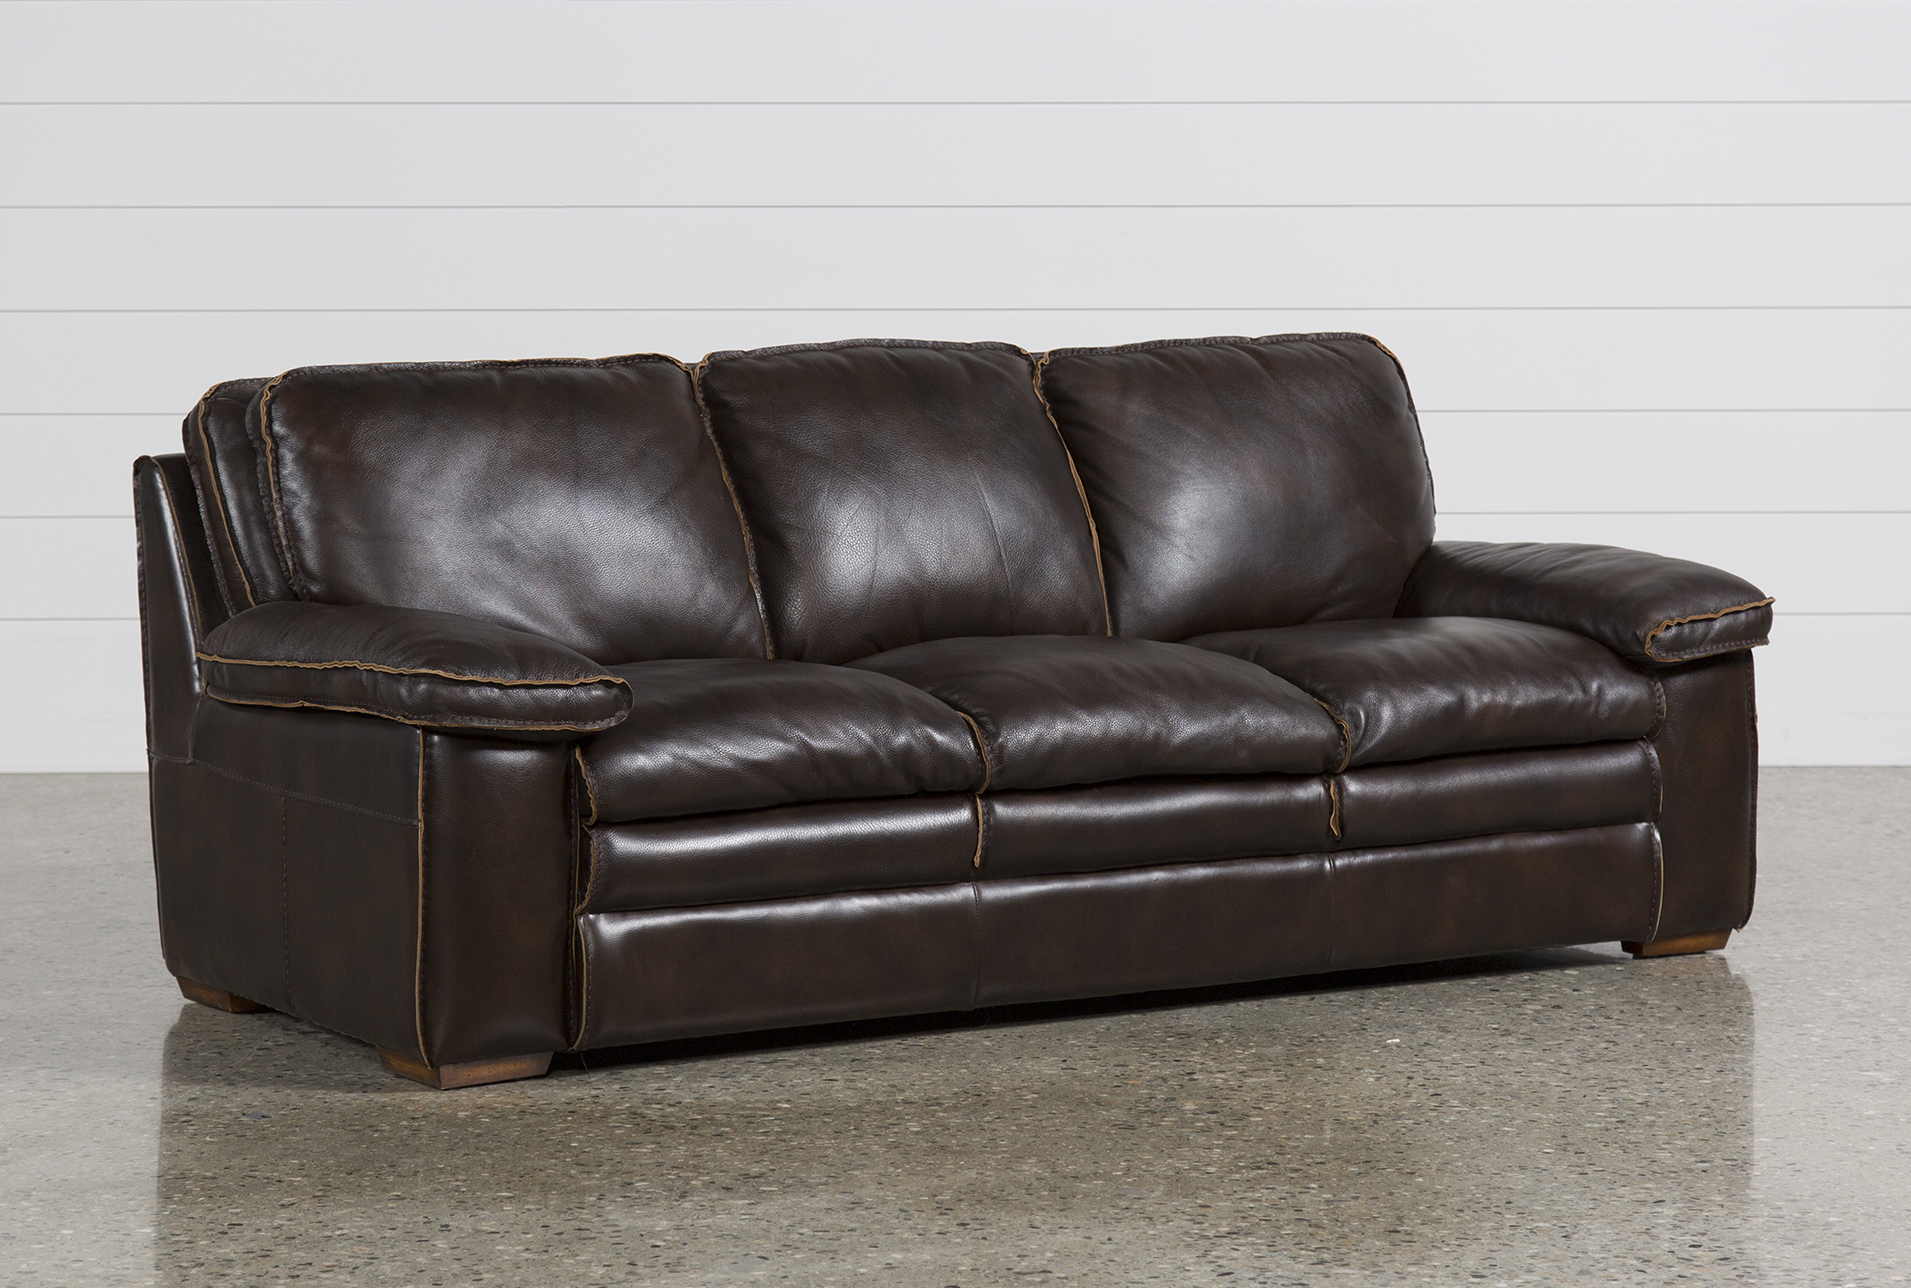 display product reviews for walter leather sofa HMOVKP68